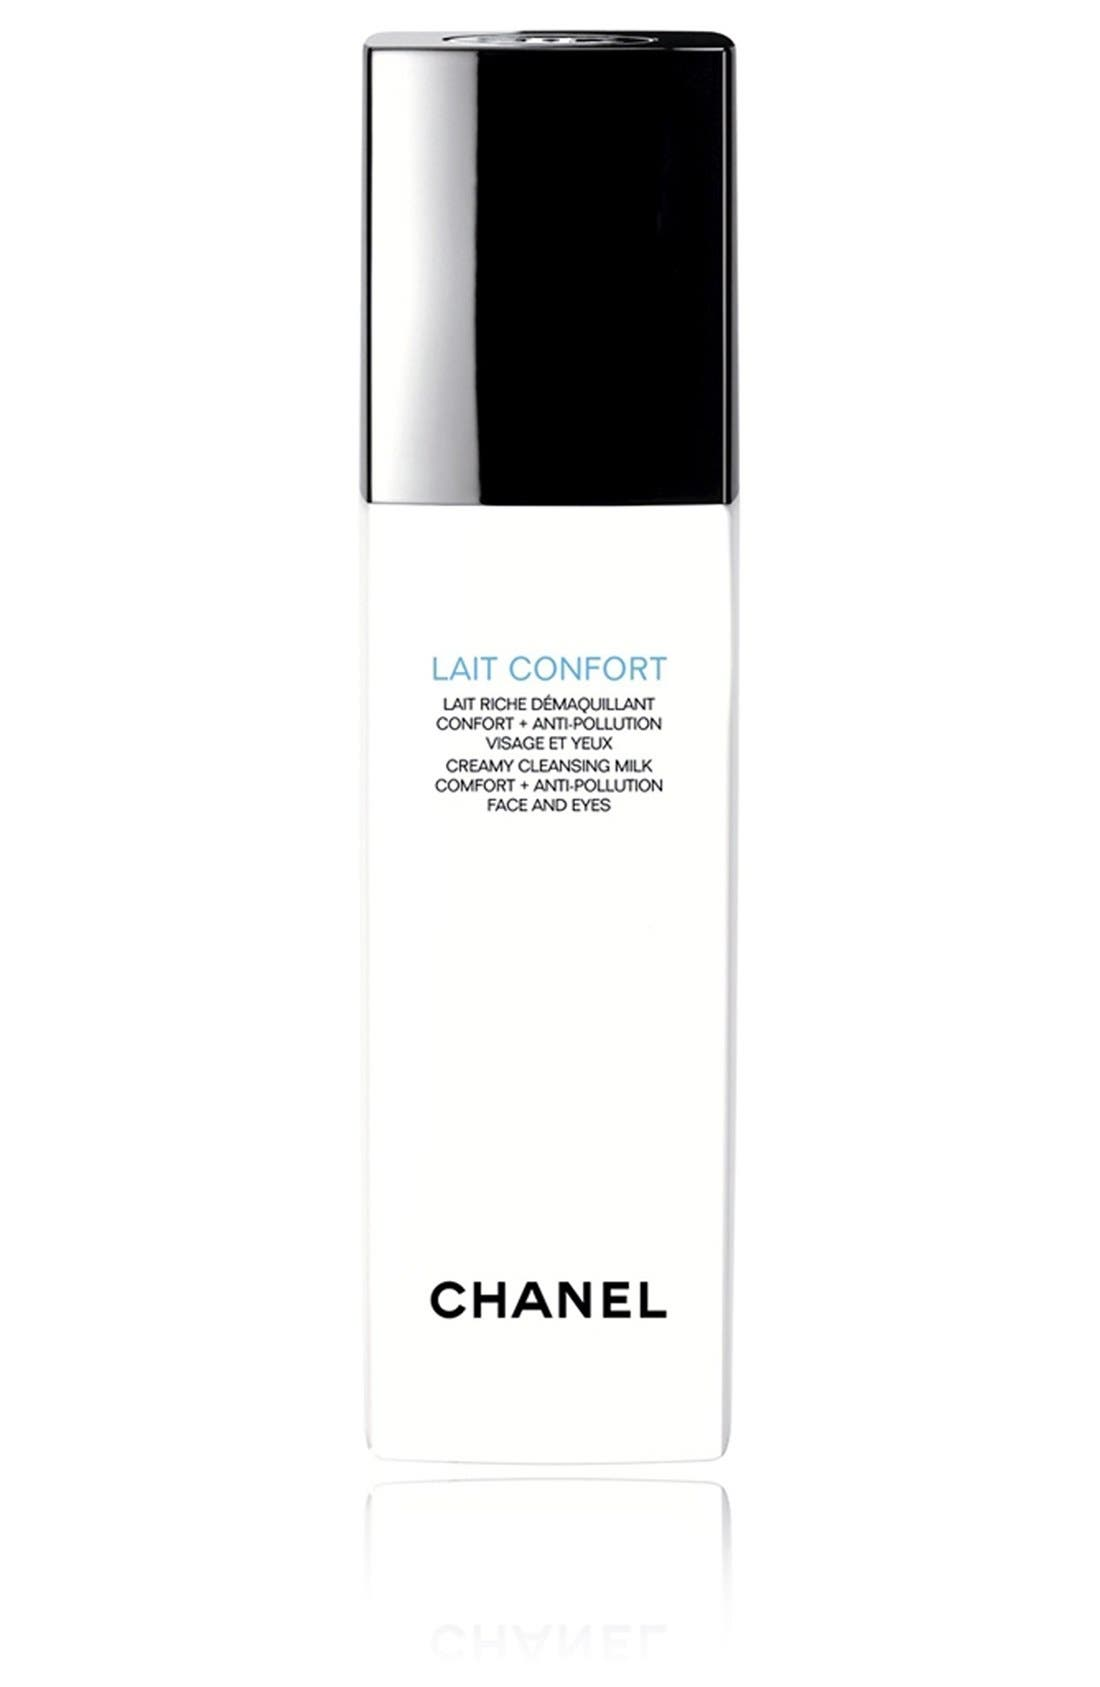 CHANEL LAIT CONFORT<br />Creamy Cleansing Milk Comfort + Anti-Pollution Face & Eyes, Main, color, 000